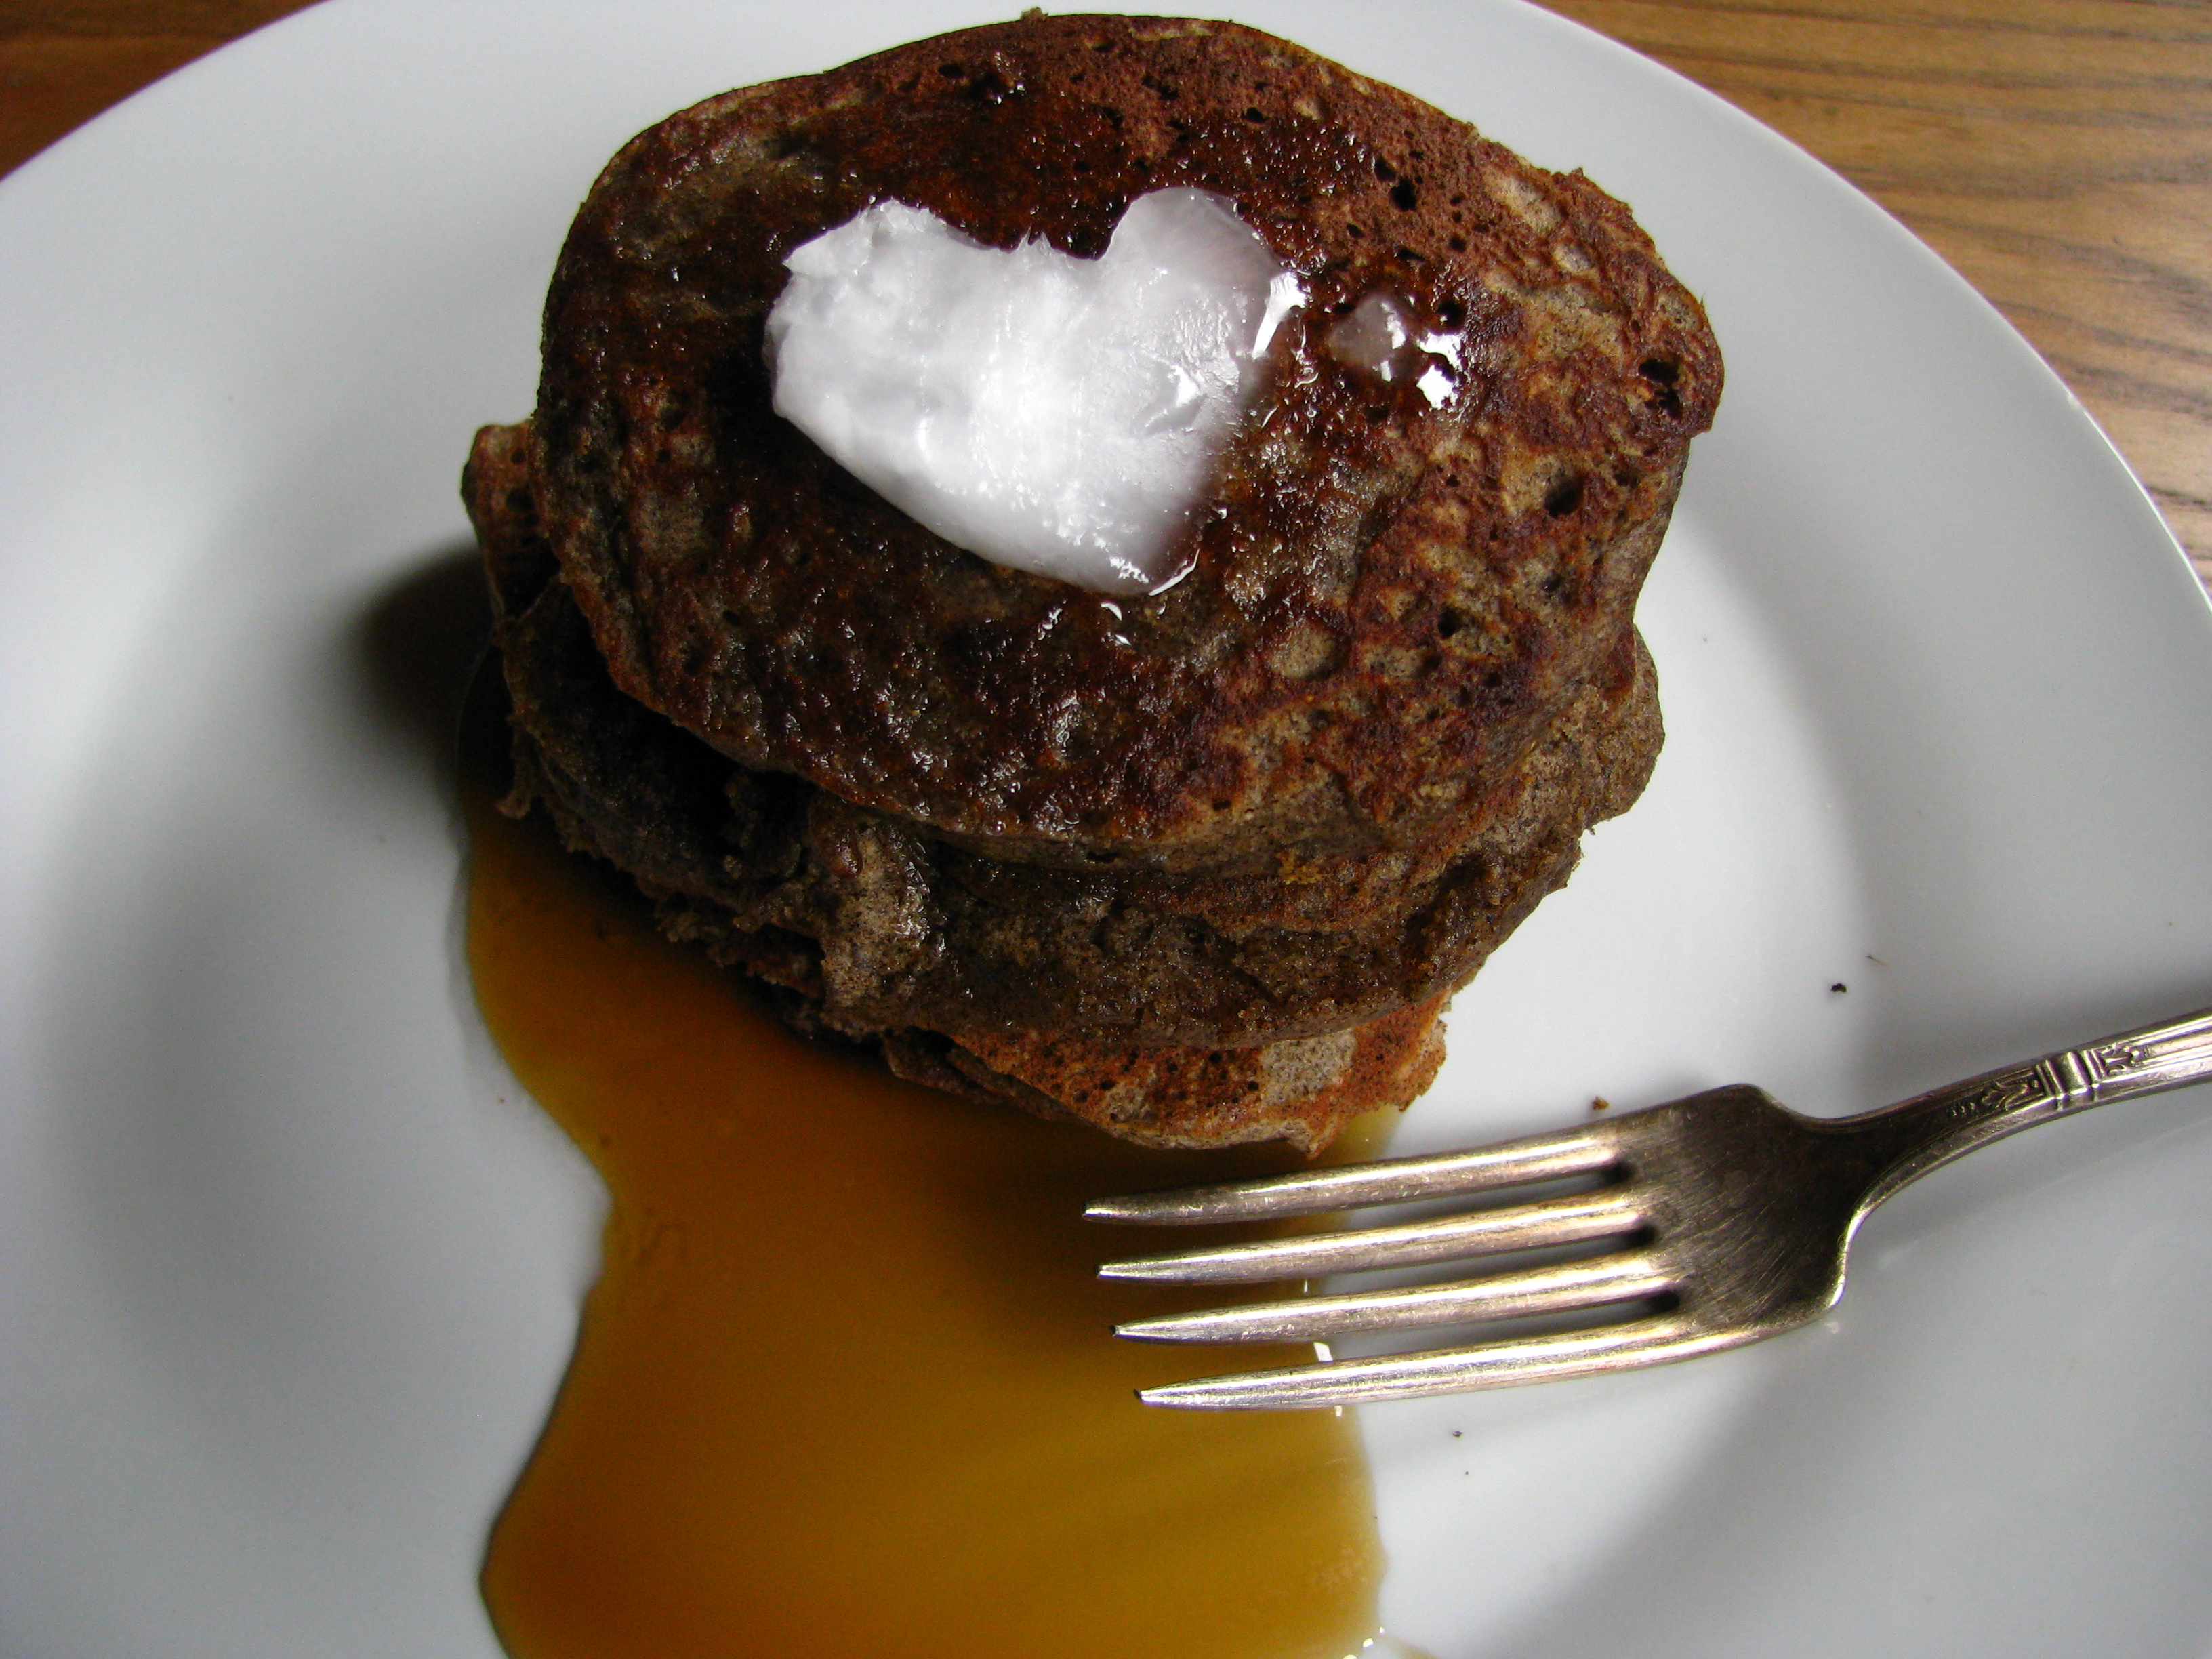 Buckwheat pancakes, gluten-free, quick and easy to make